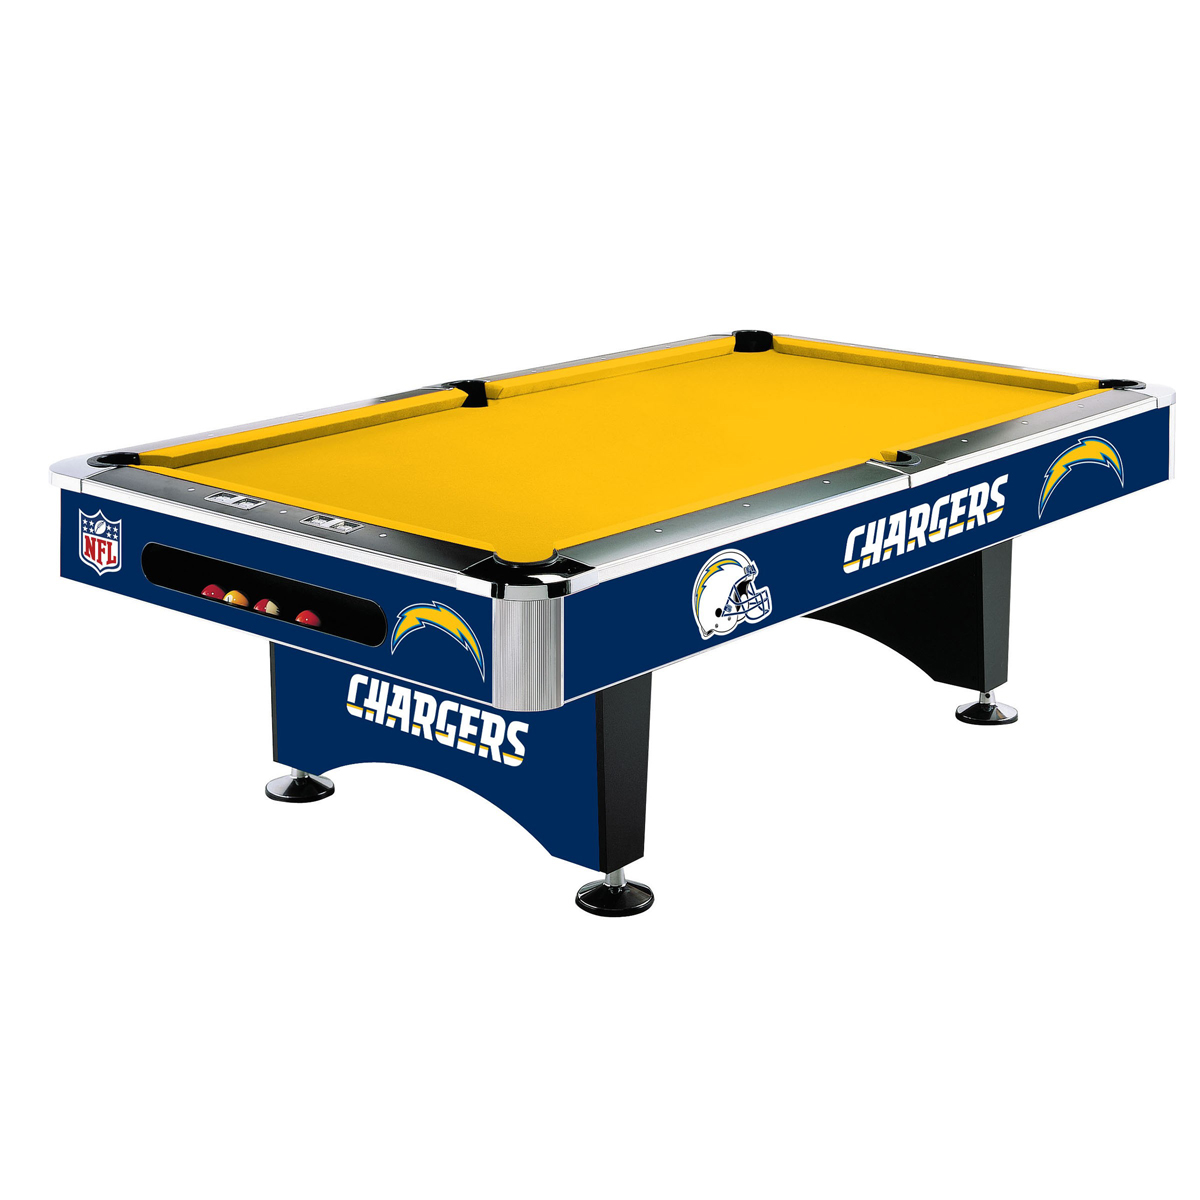 LOS ANGELES CHARGERS 8-FT. POOL TABLE